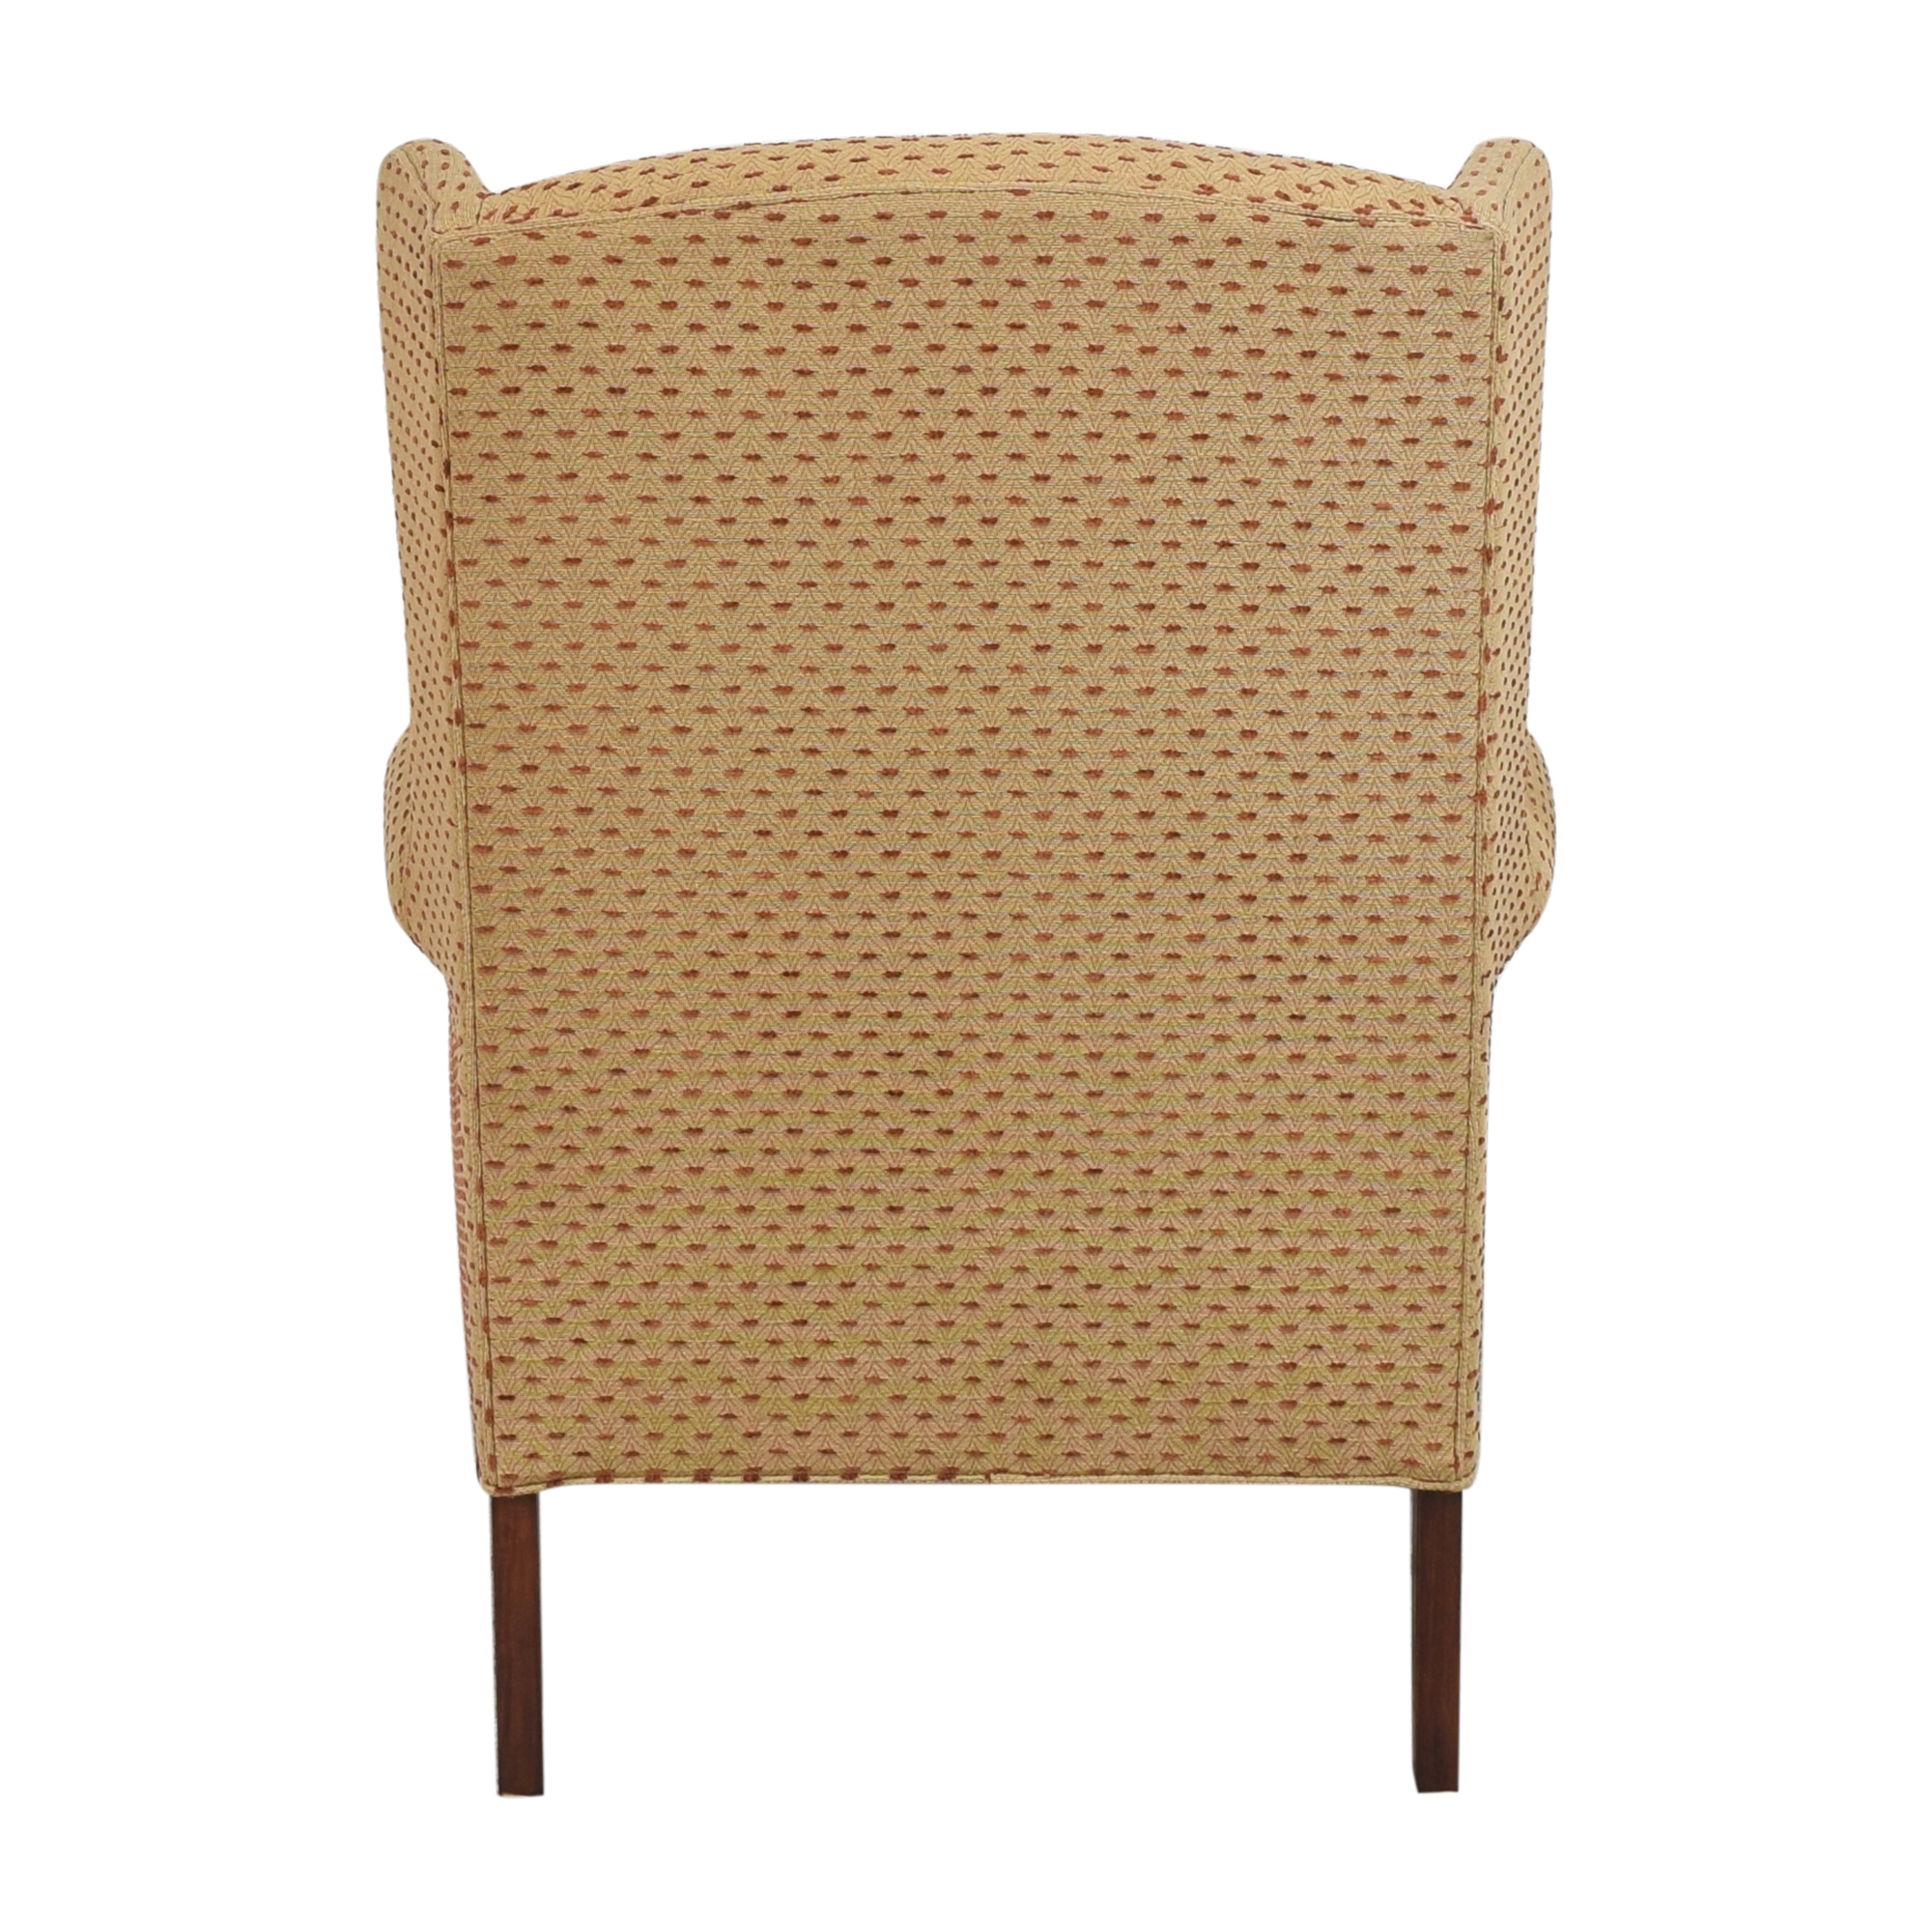 Thomasville Thomasville Accent Chair with Ottoman discount